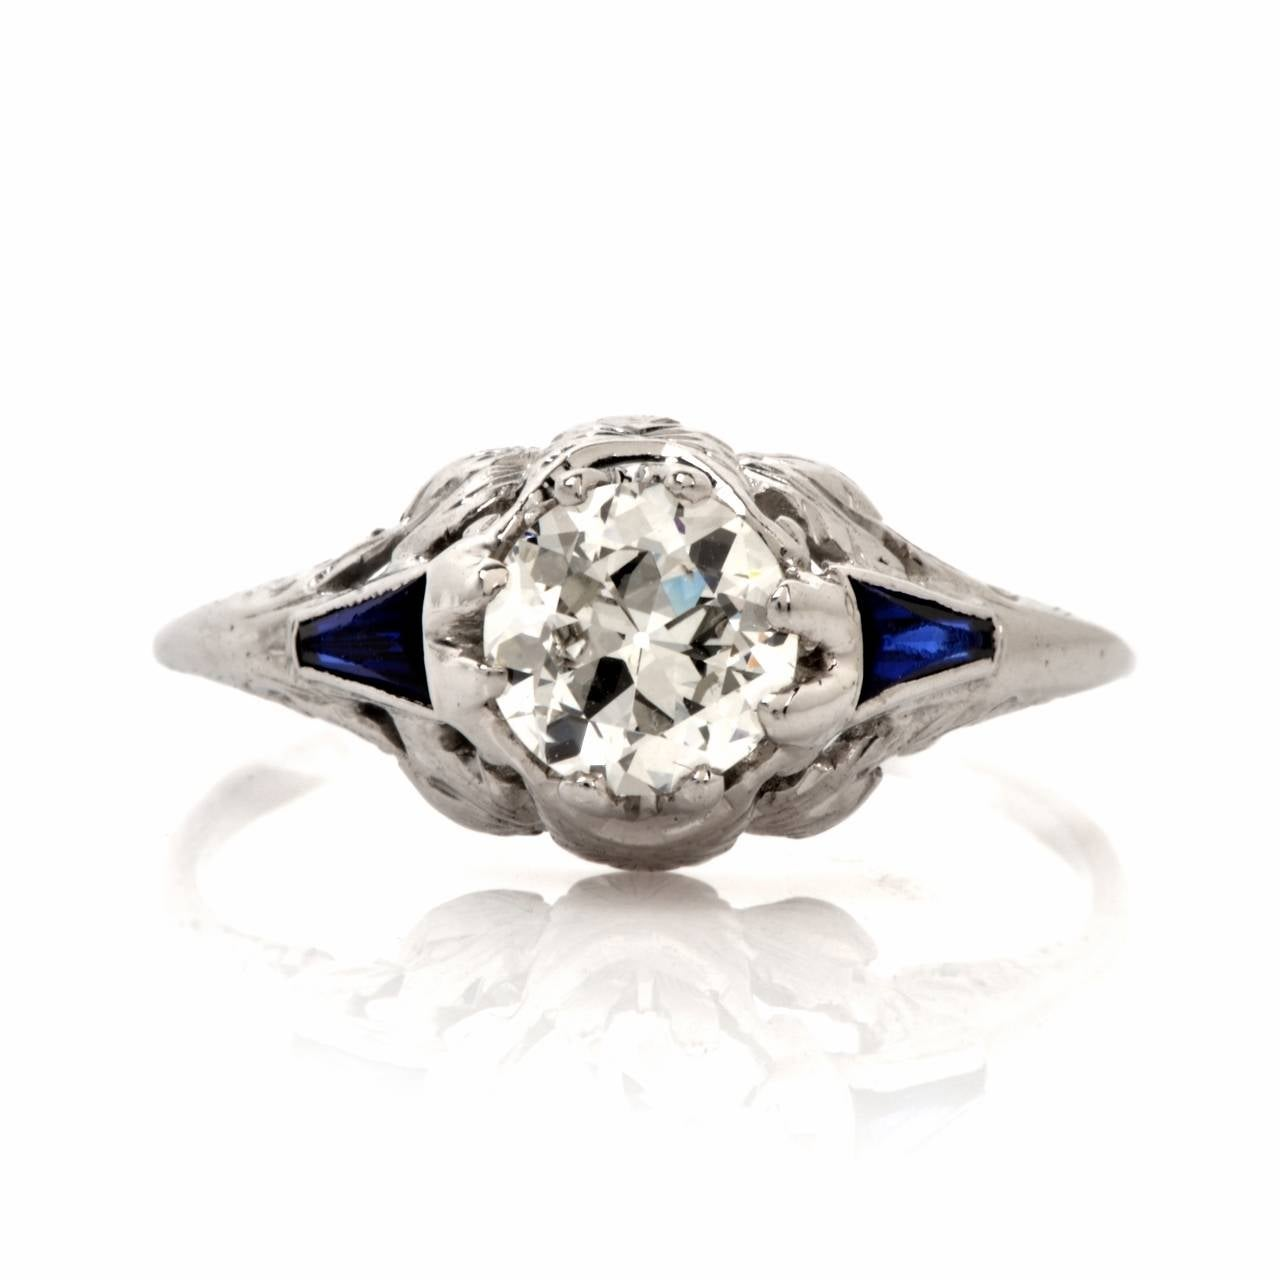 1930s sapphire platinum engagement ring for sale